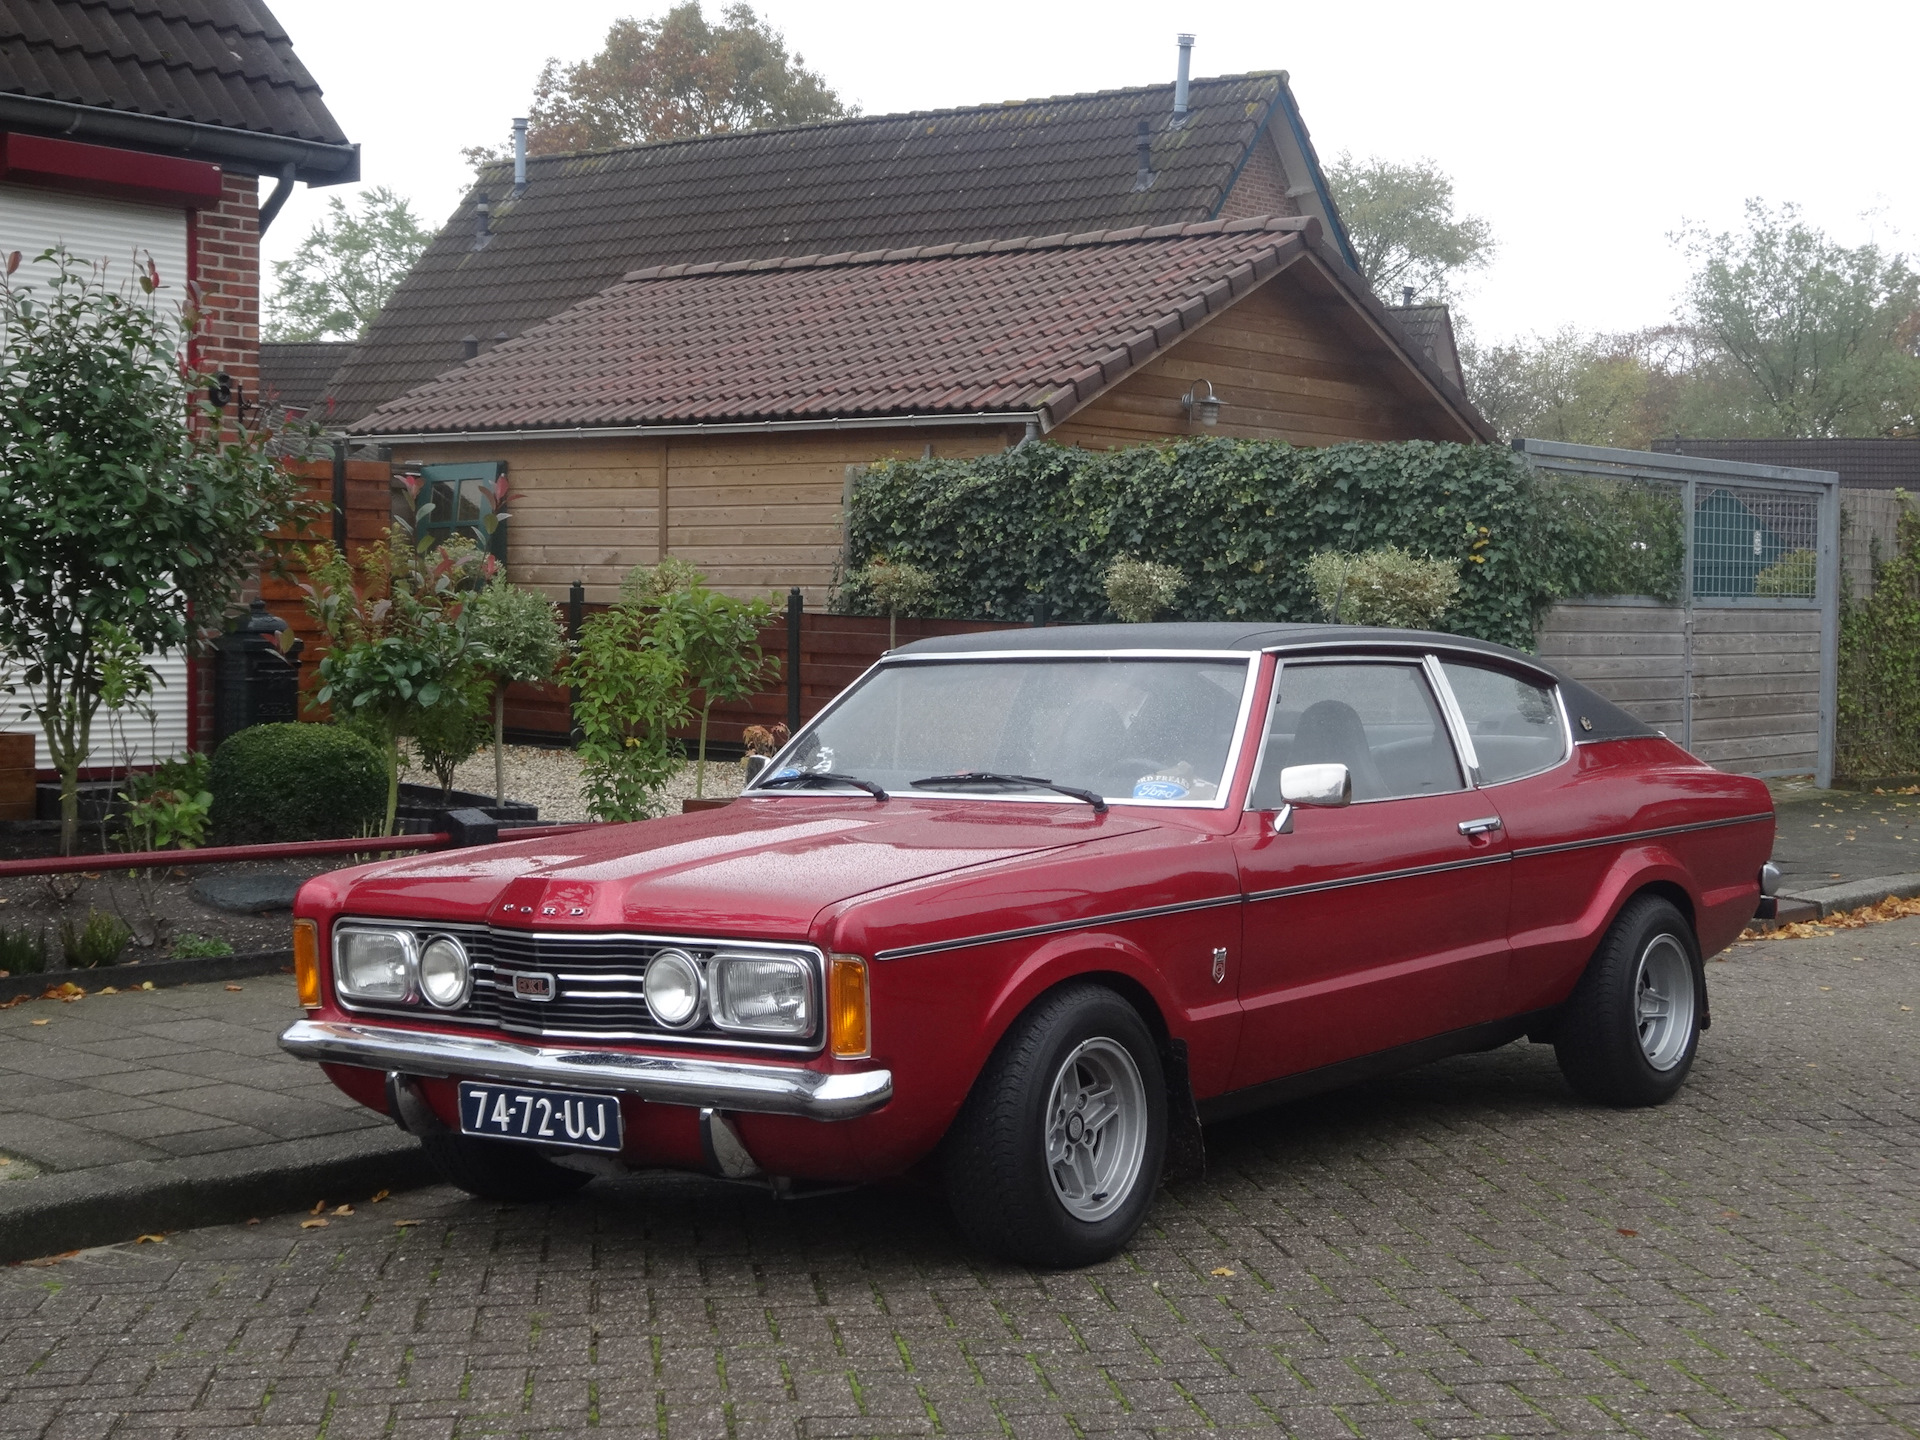 Ford taunus fastback ohc a4ld 1971 drive2 - Ford taunus gxl coupe 2000 v6 1971 ...